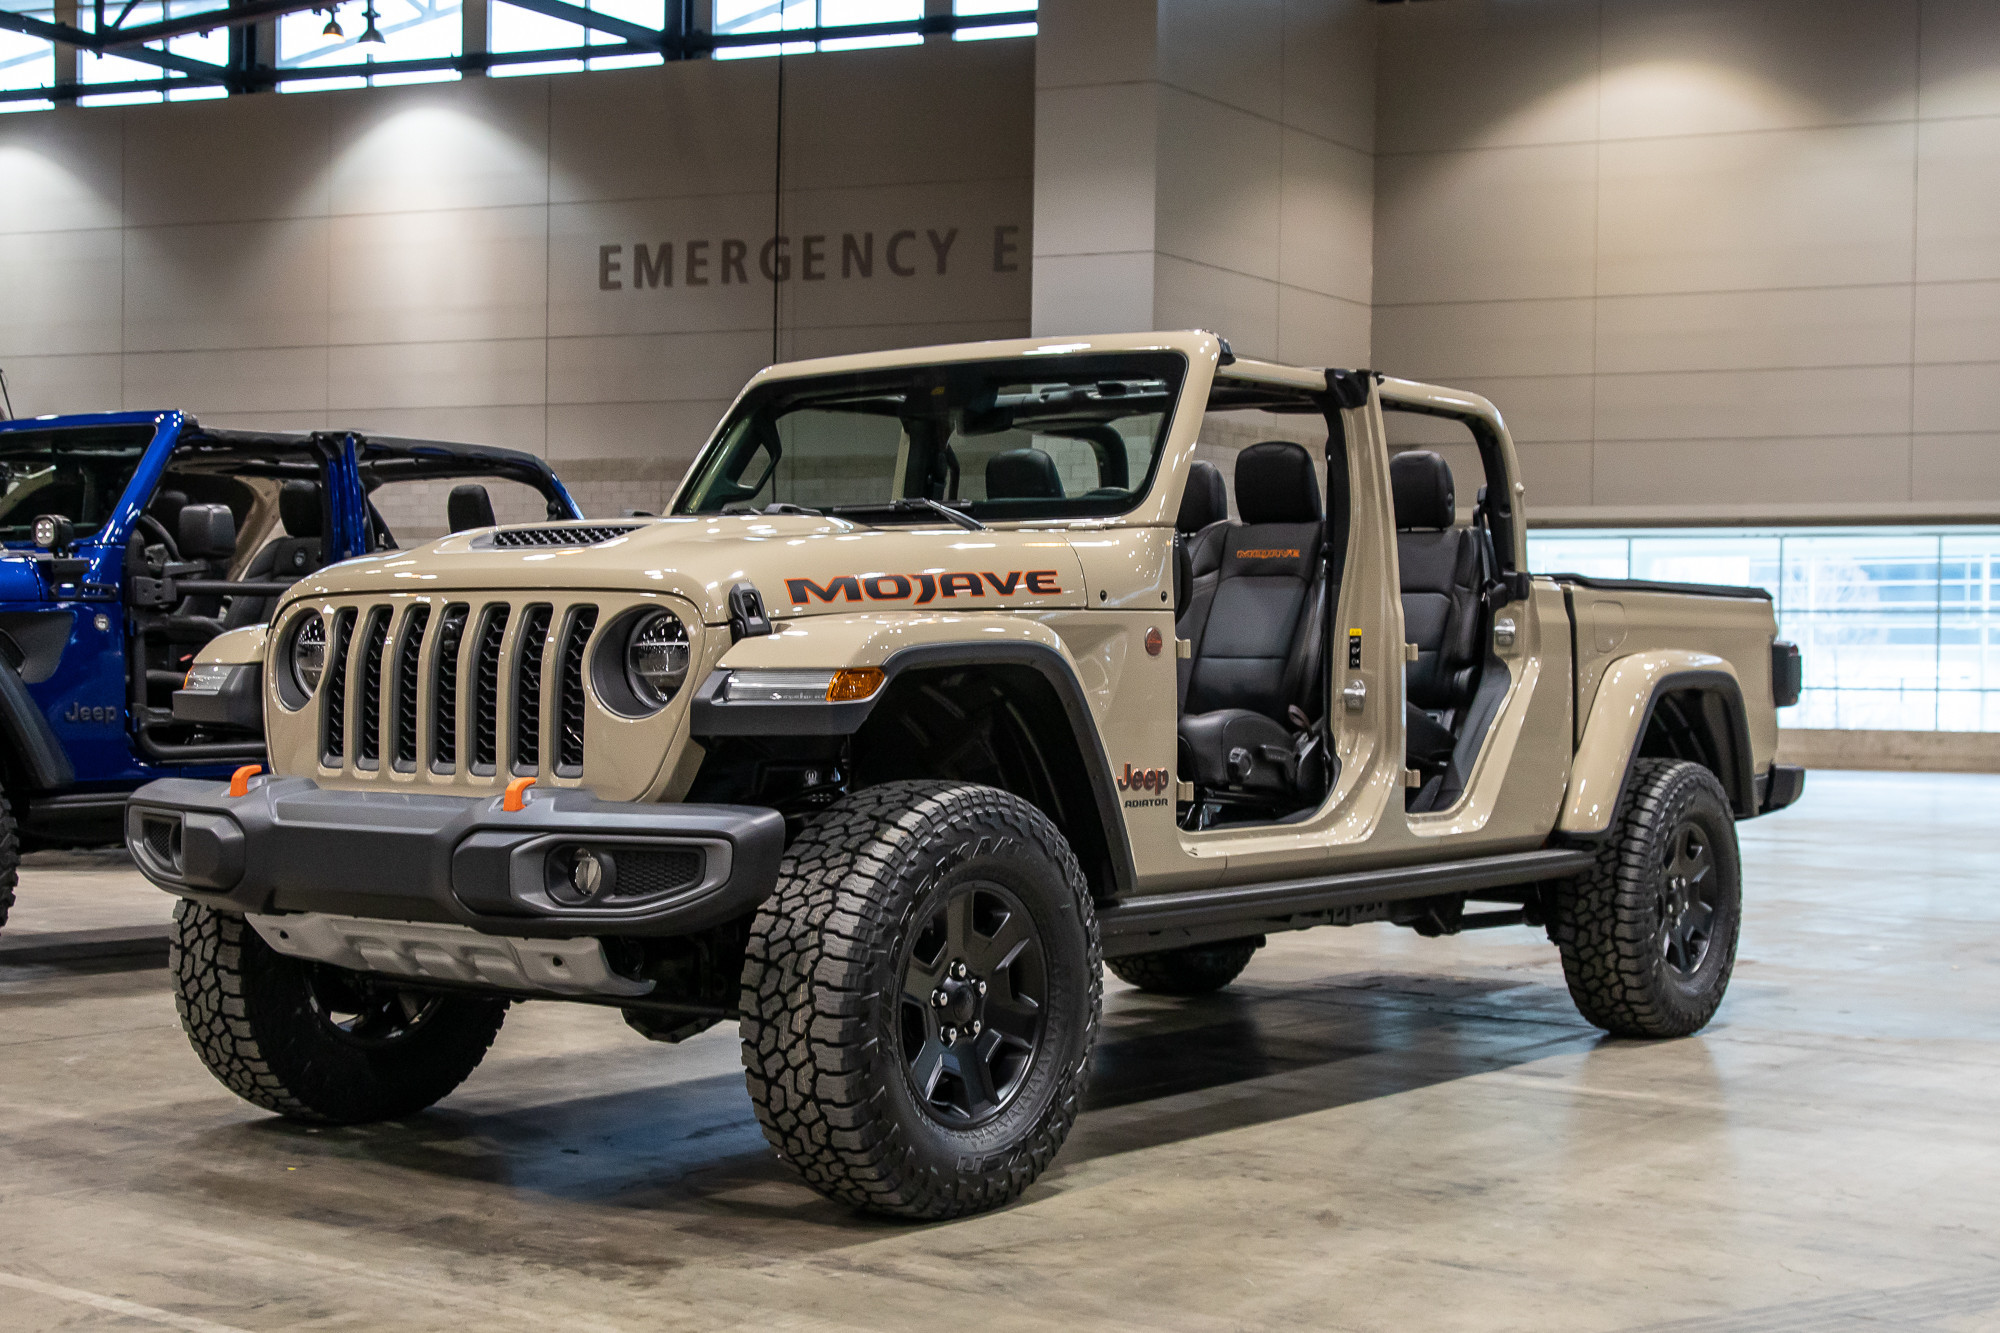 2020 Jeep Gladiator Mojave Video: Desert Rated